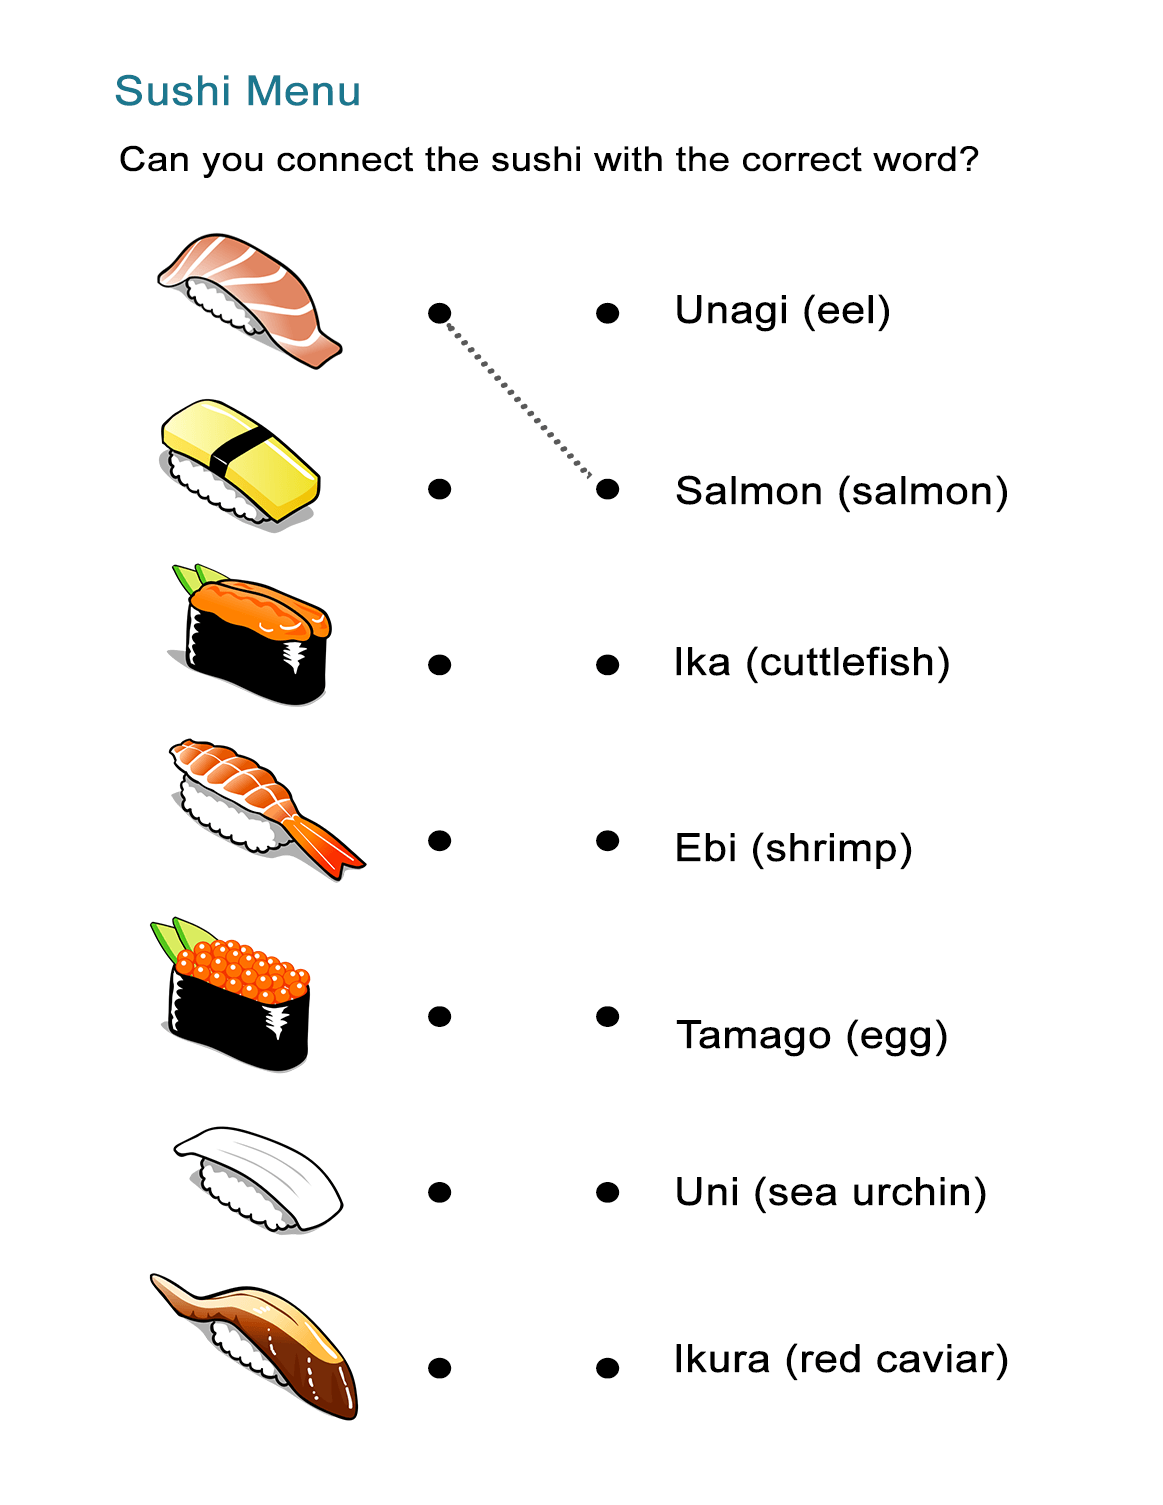 Types Of Sushi Rolls: What Is Your National Food?